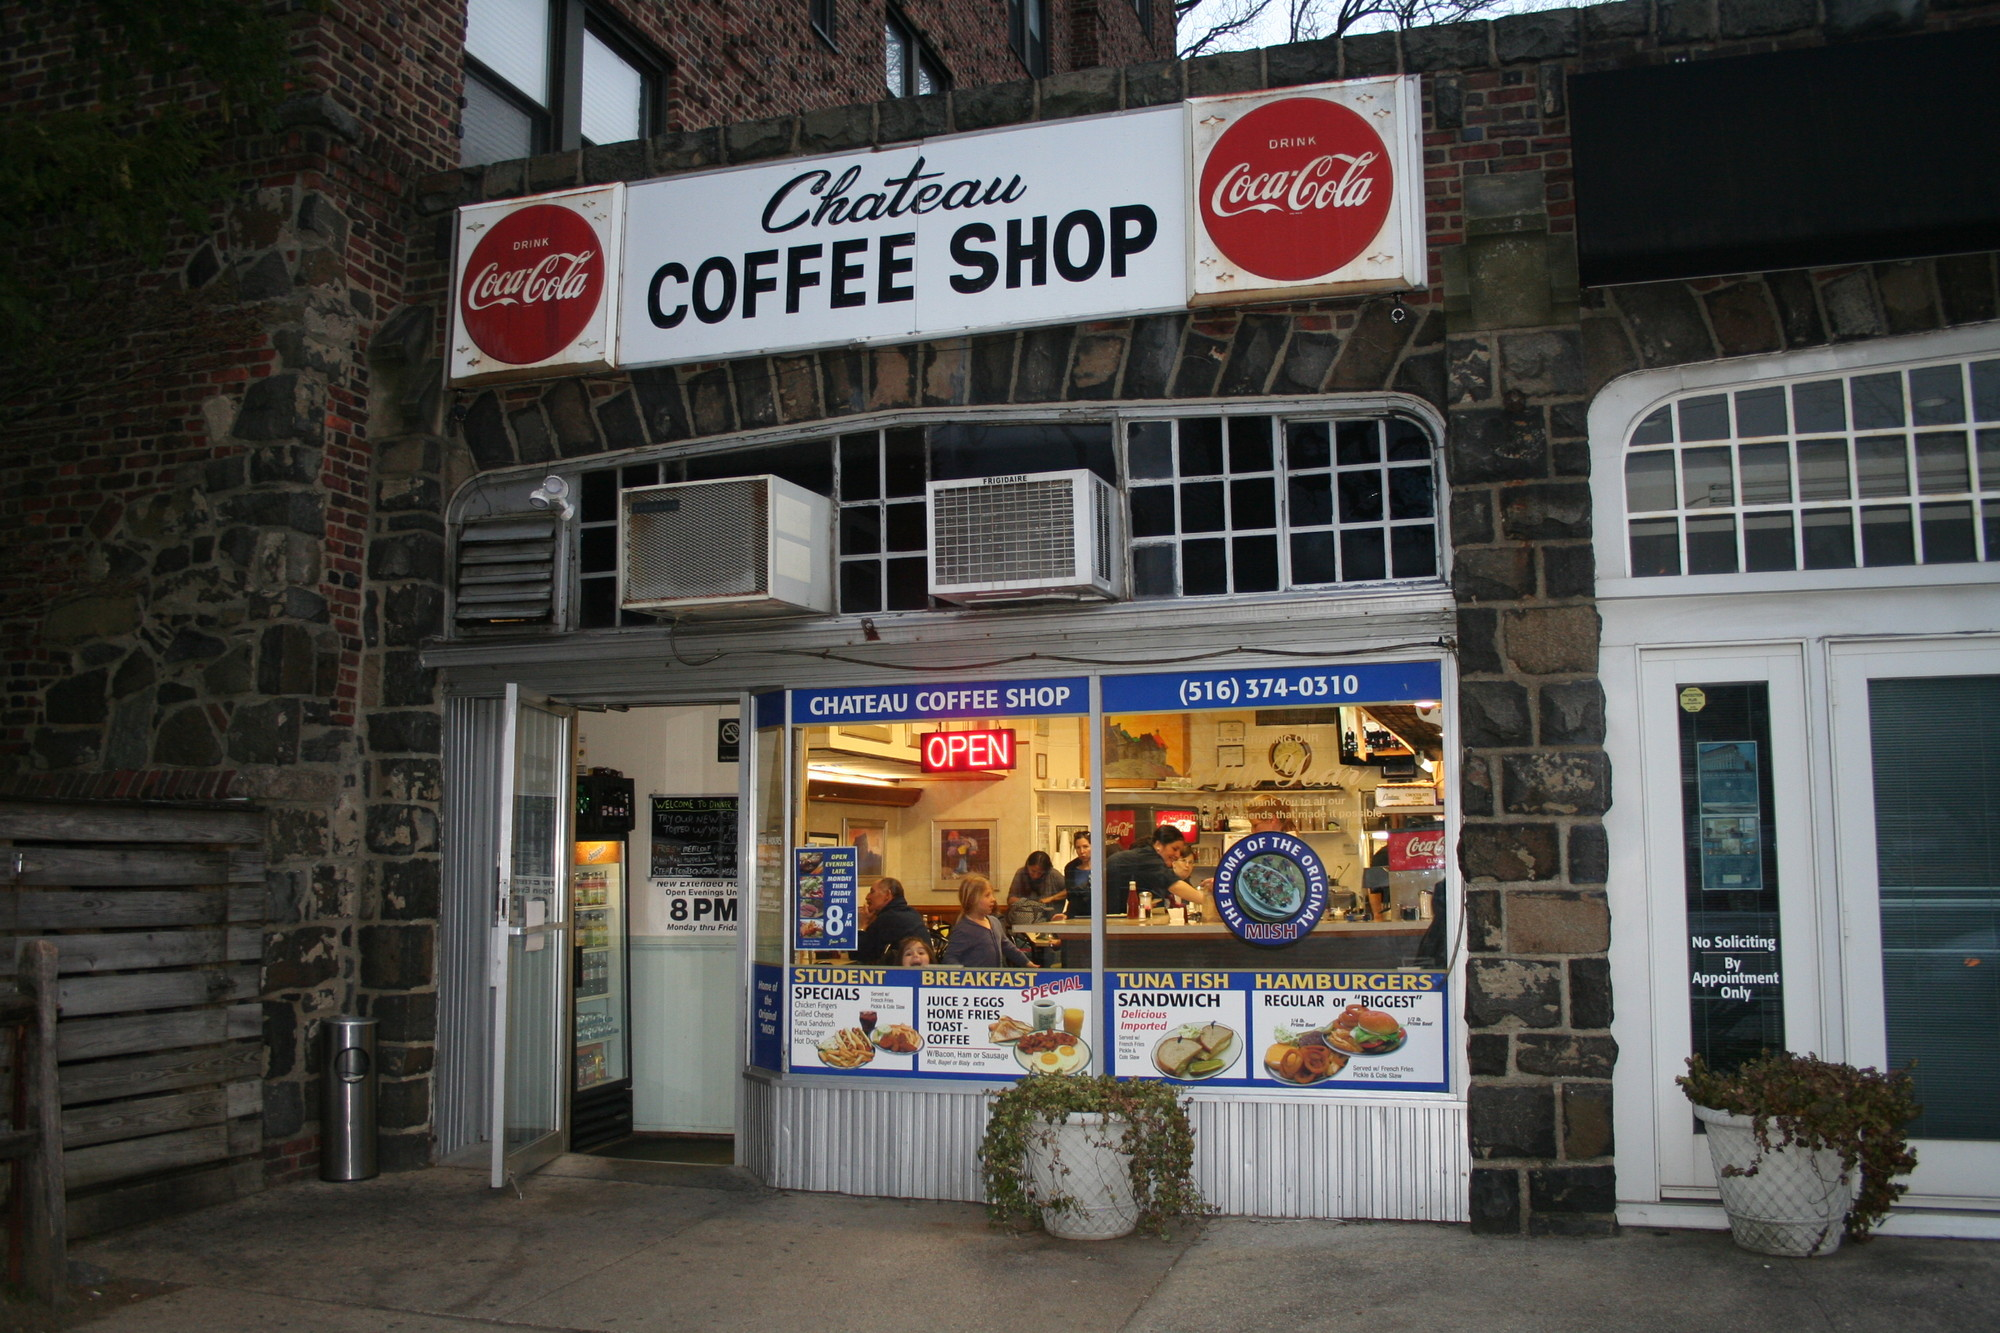 Chateau Coffee Shop in Woodmere has been in business since 1958 and is known for their burgers, roast turkey dinner, milk shakes and mish, a chopped salad.